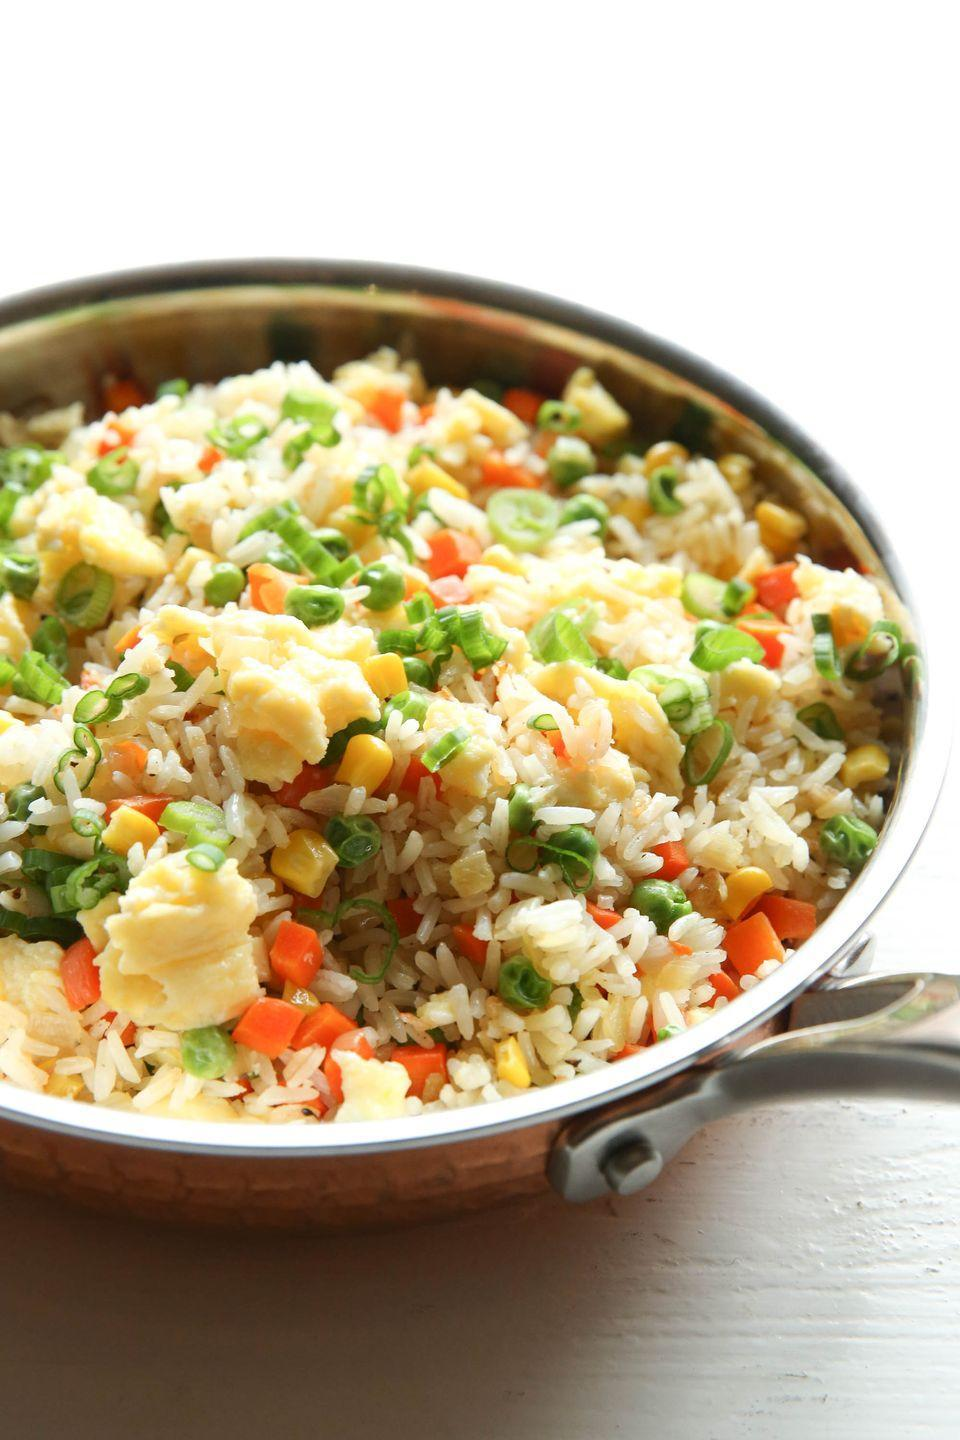 """<p>This is a true crowd pleaser.</p><p>Get the recipe from <a href=""""https://www.delish.com/cooking/recipe-ideas/recipes/a51448/easy-fried-rice-recipe/"""" rel=""""nofollow noopener"""" target=""""_blank"""" data-ylk=""""slk:Delish"""" class=""""link rapid-noclick-resp"""">Delish</a>.</p>"""